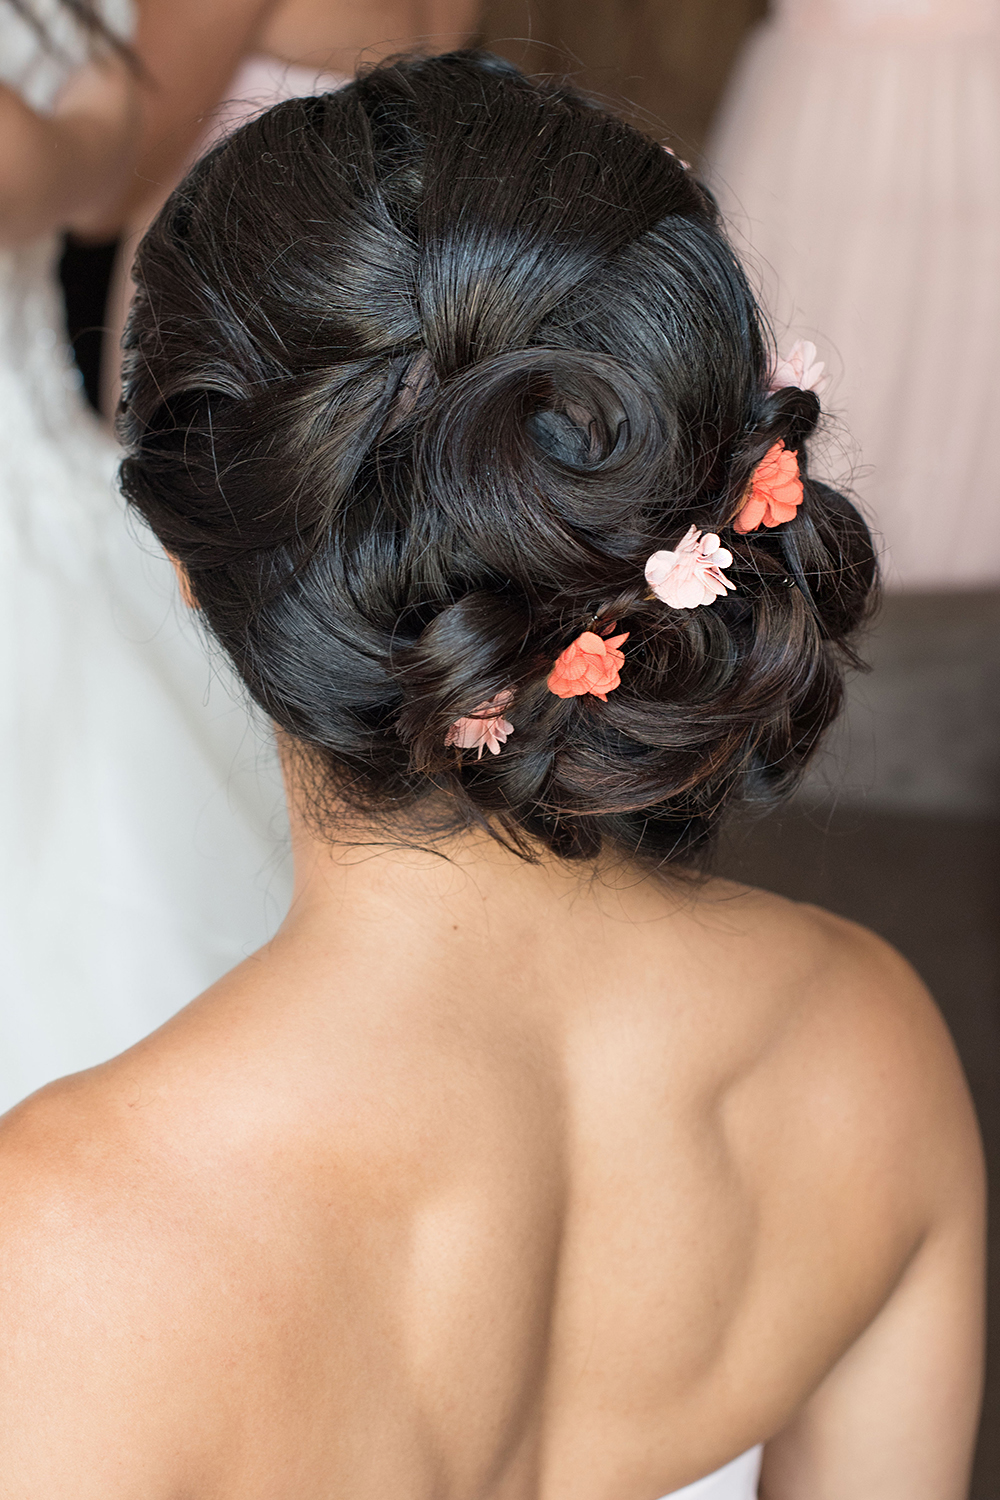 Updo Bridal makeup and hair LA Los Angeles Beauty Affair_32.jpg